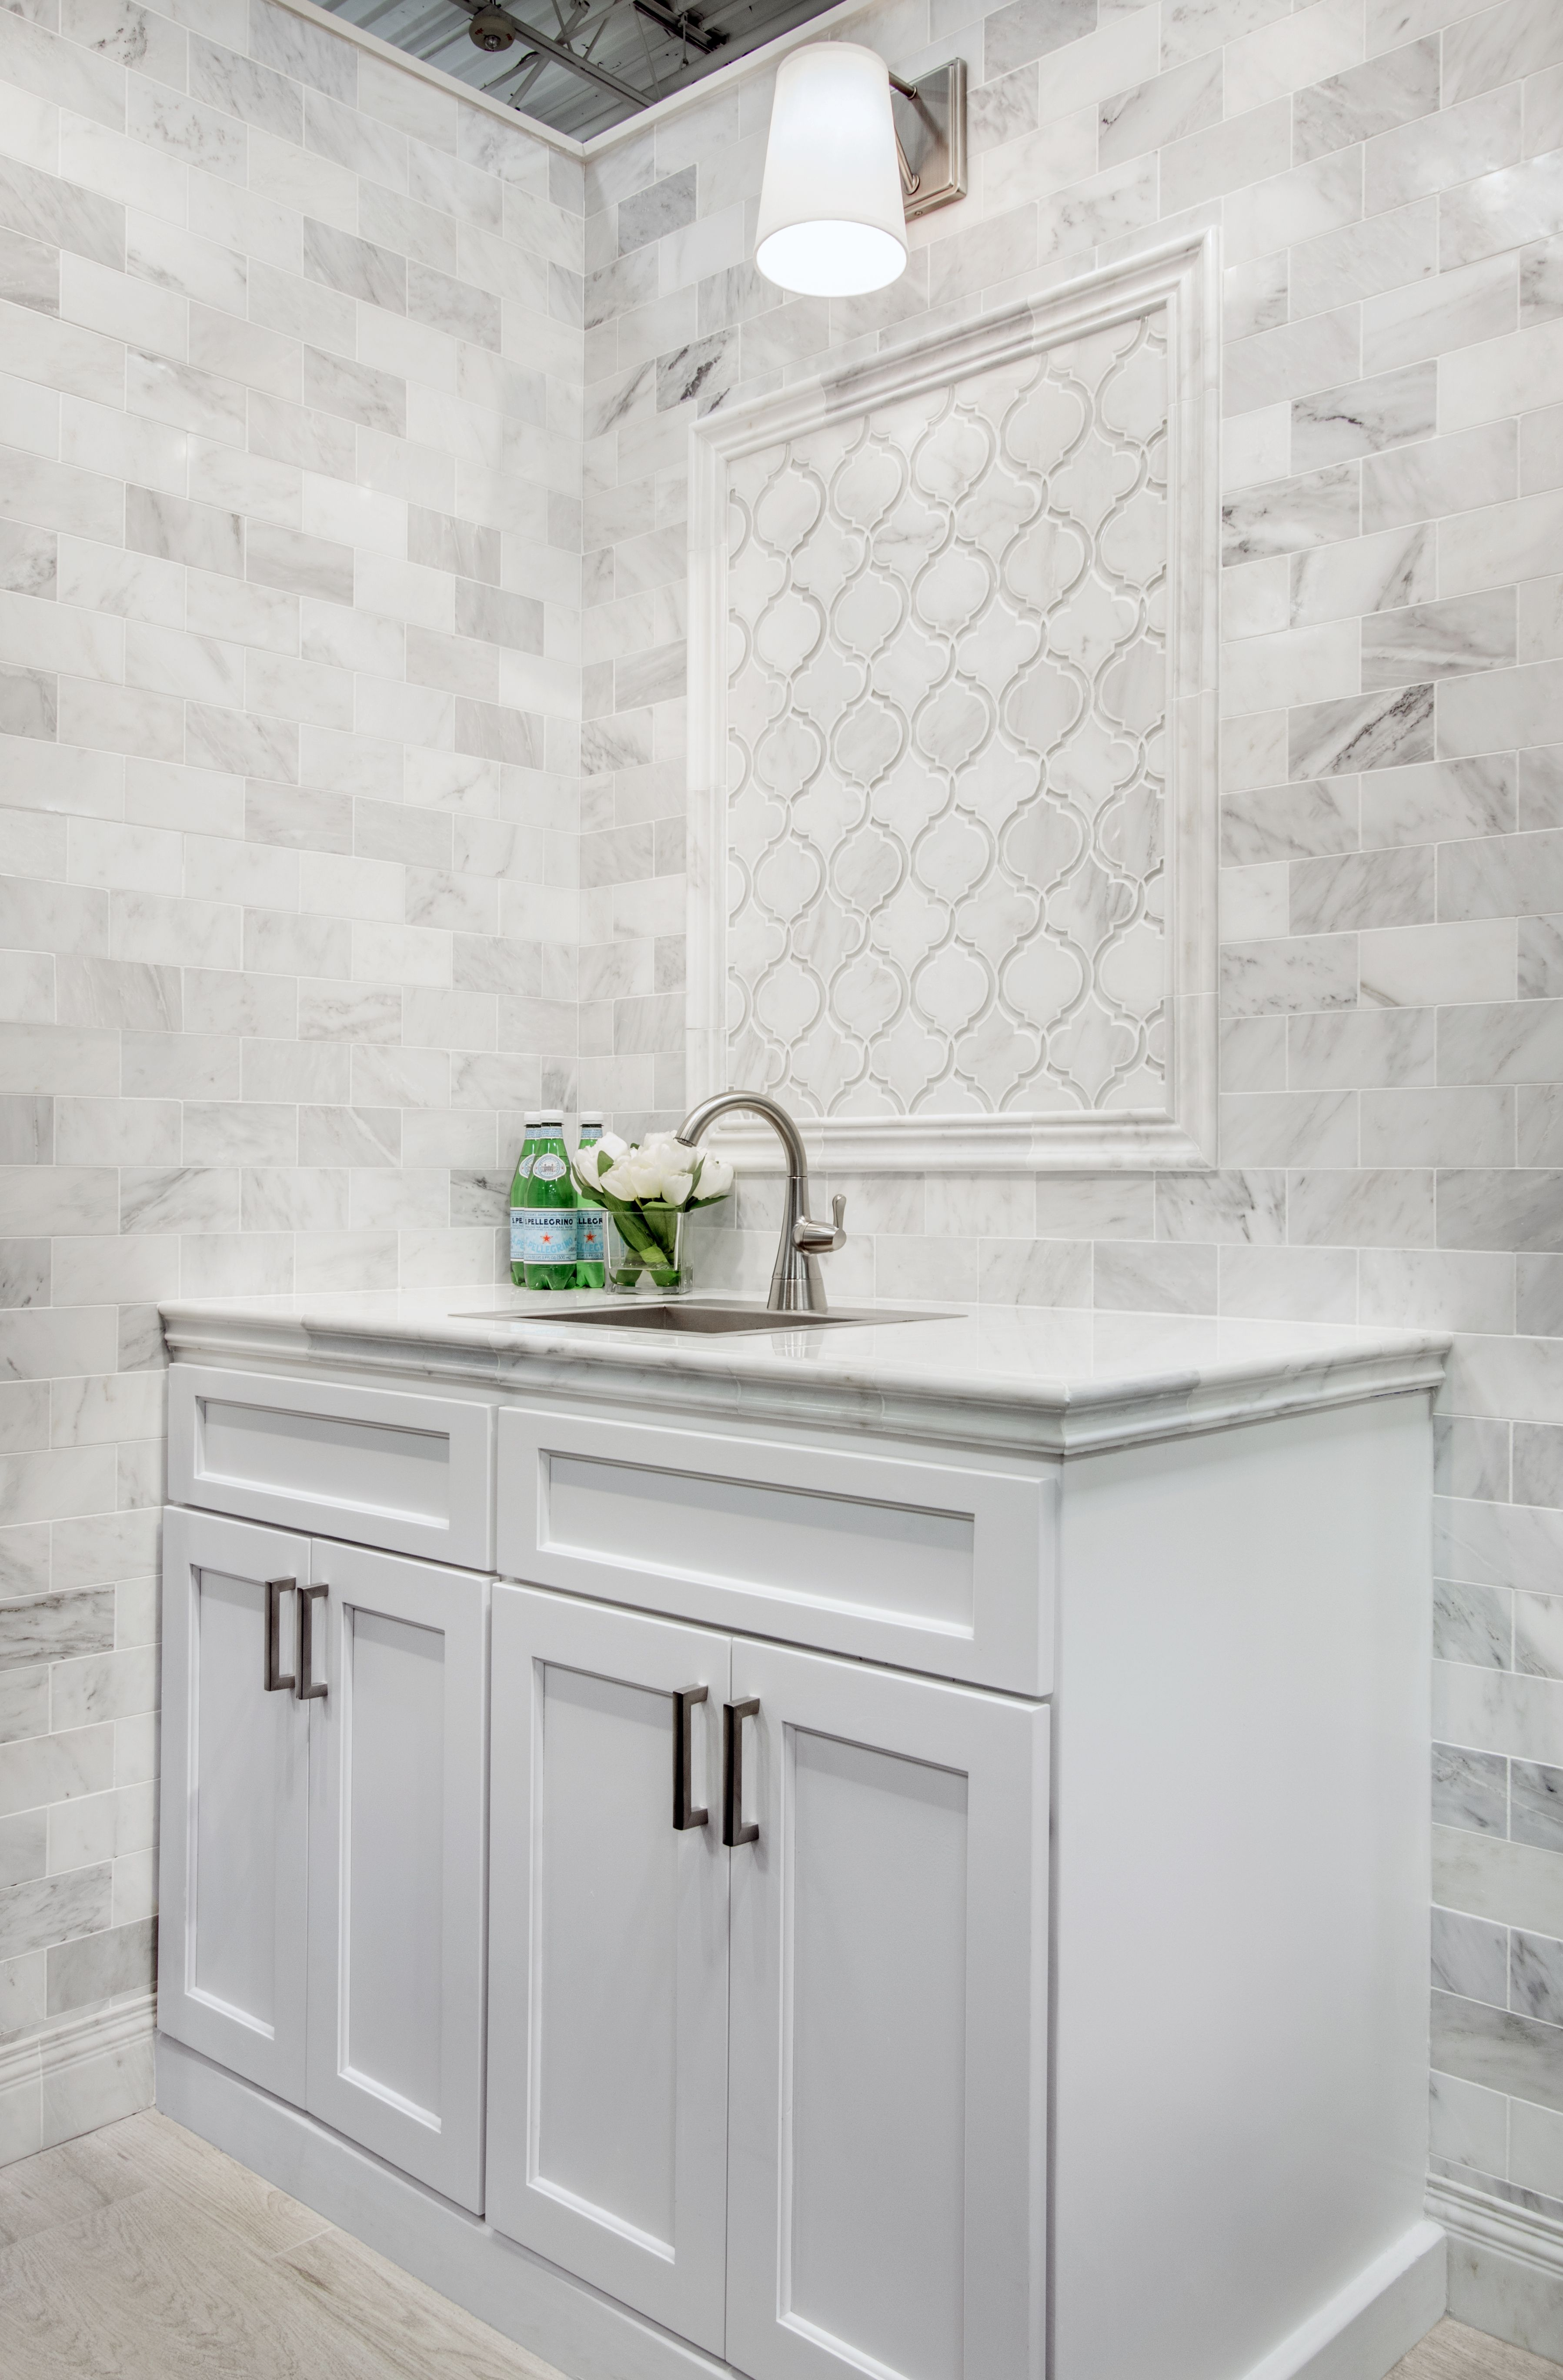 - With A Sleek Glass Tile Border Around Each Shape, This Wavy